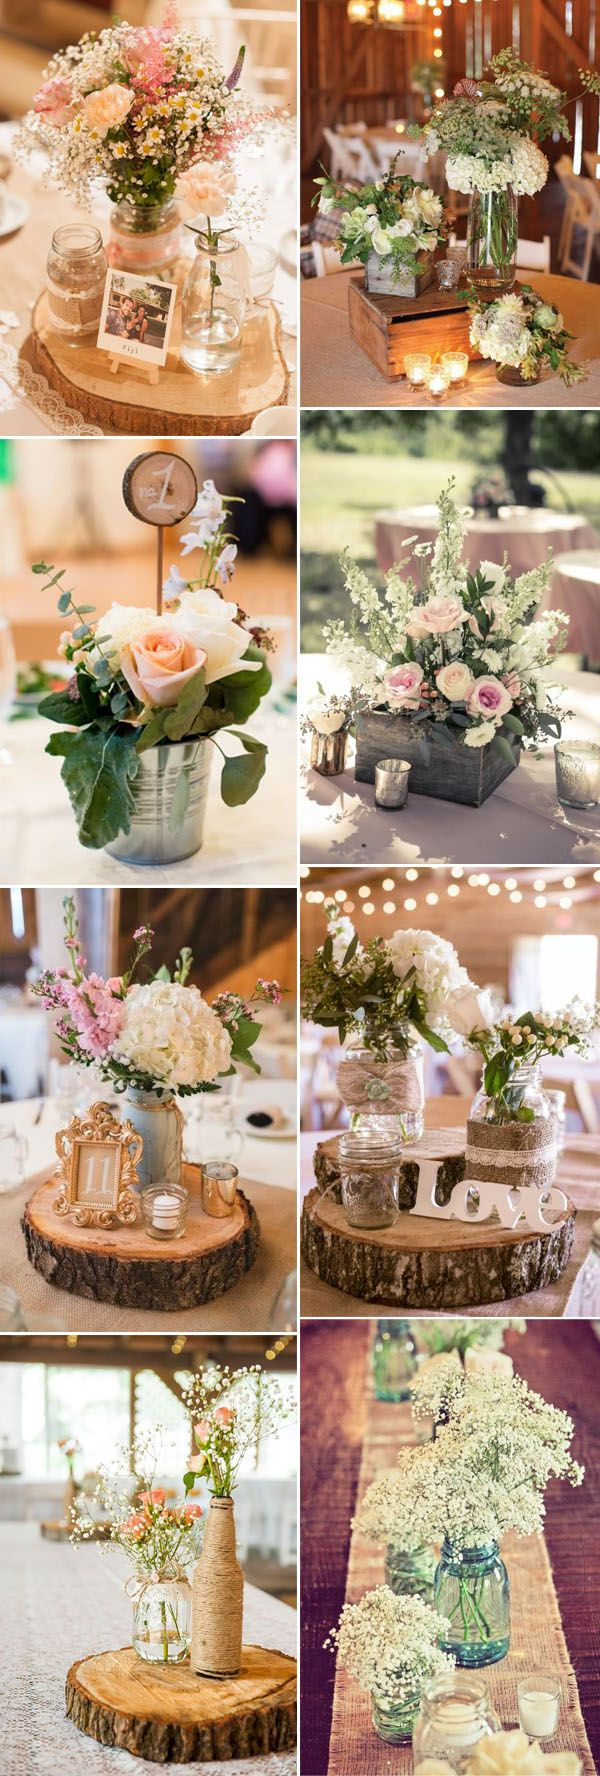 156 best wedding centerpieces images on pinterest flower 32 stunning wedding centerpieces ideas junglespirit